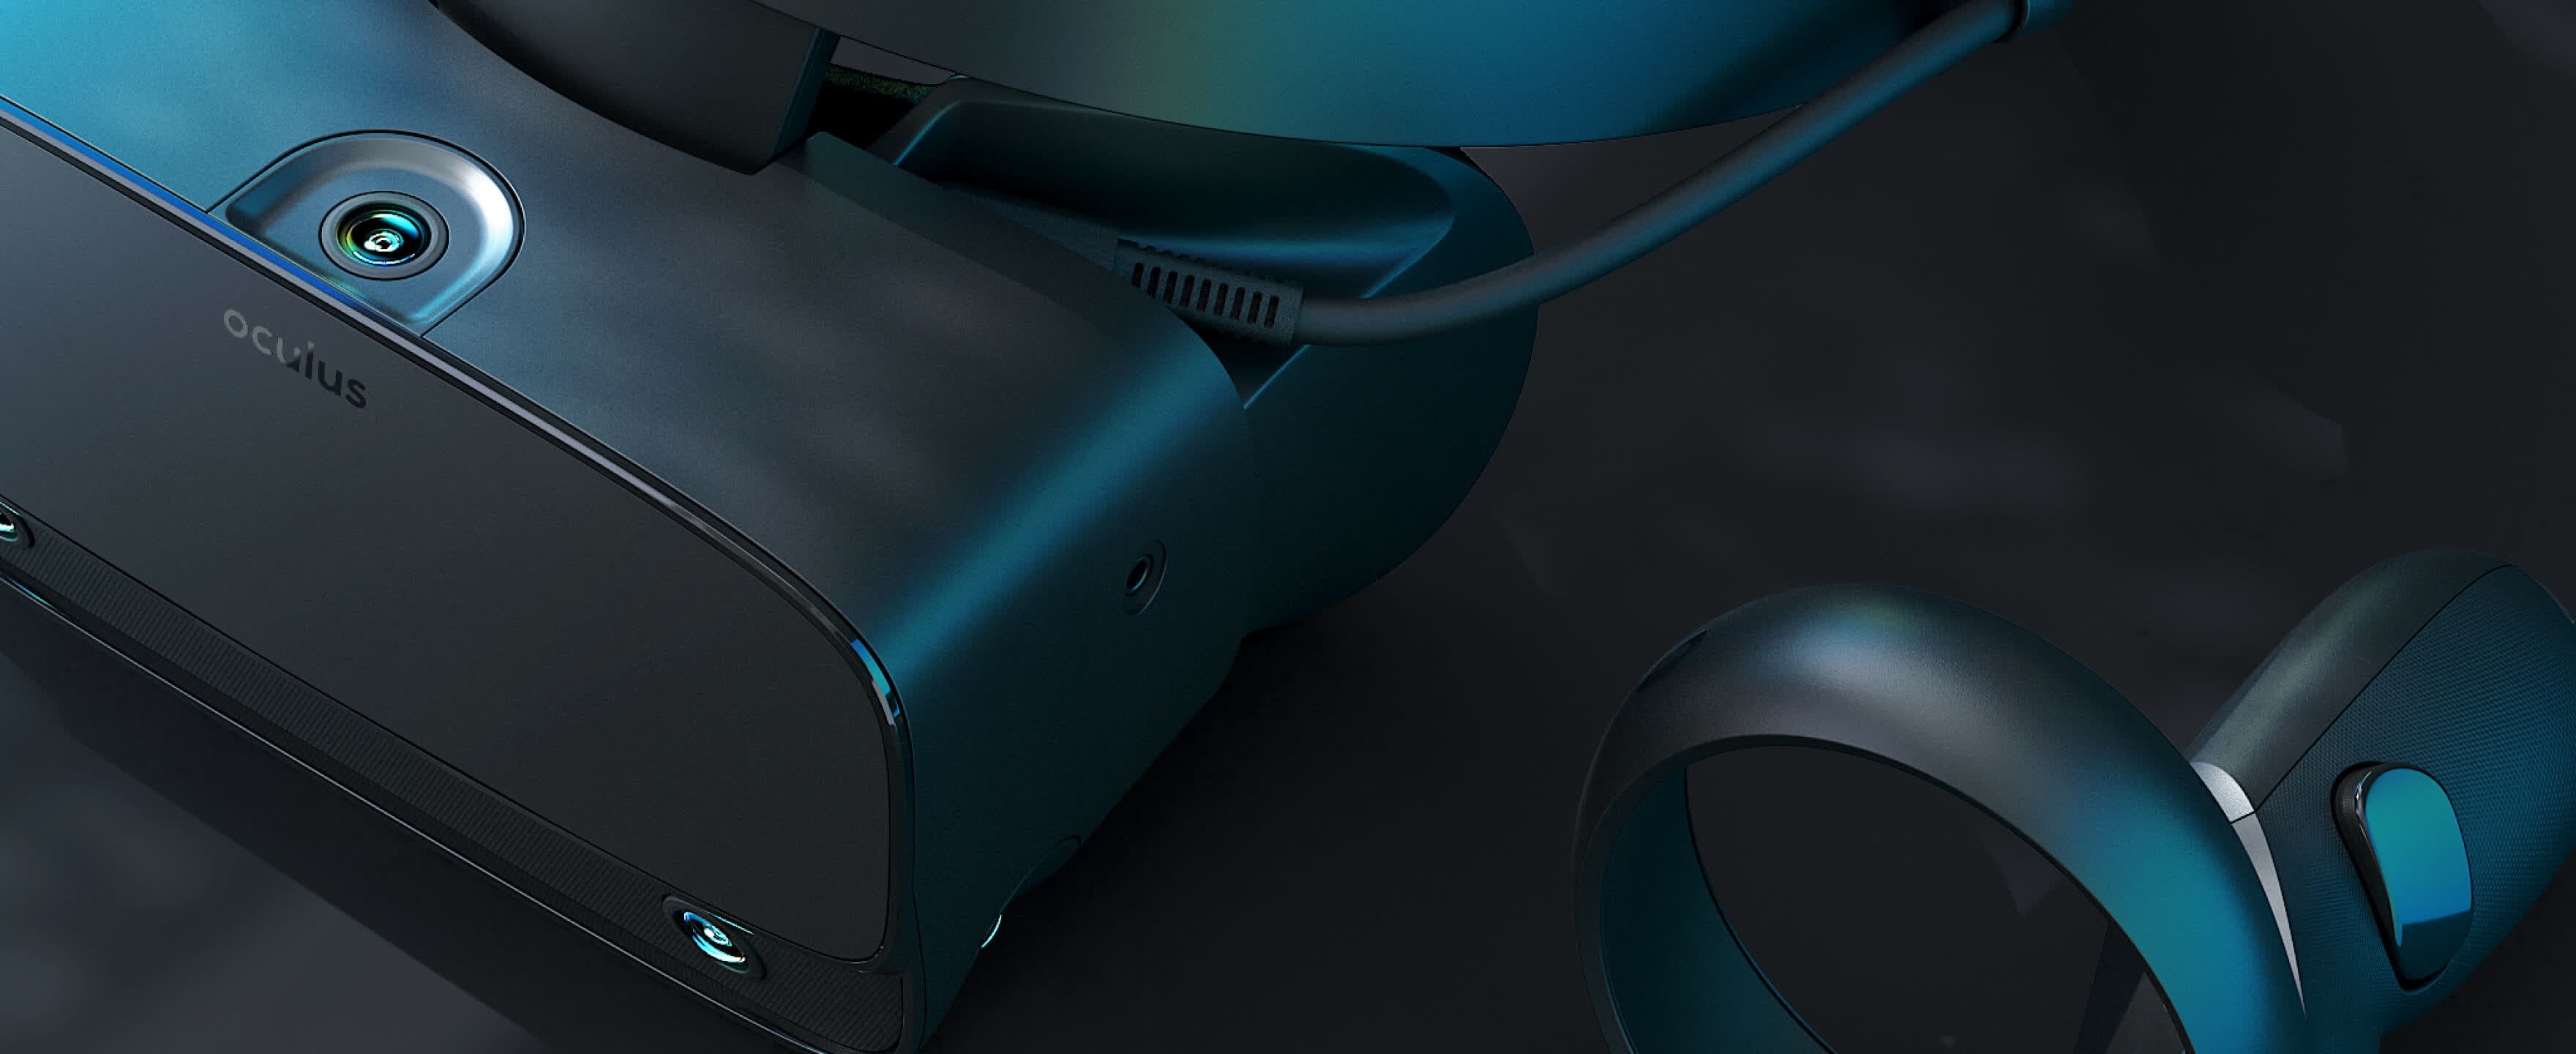 Facebook won't replenish Oculus Rift S stock, will focus on the Oculus Quest 2 thumbnail